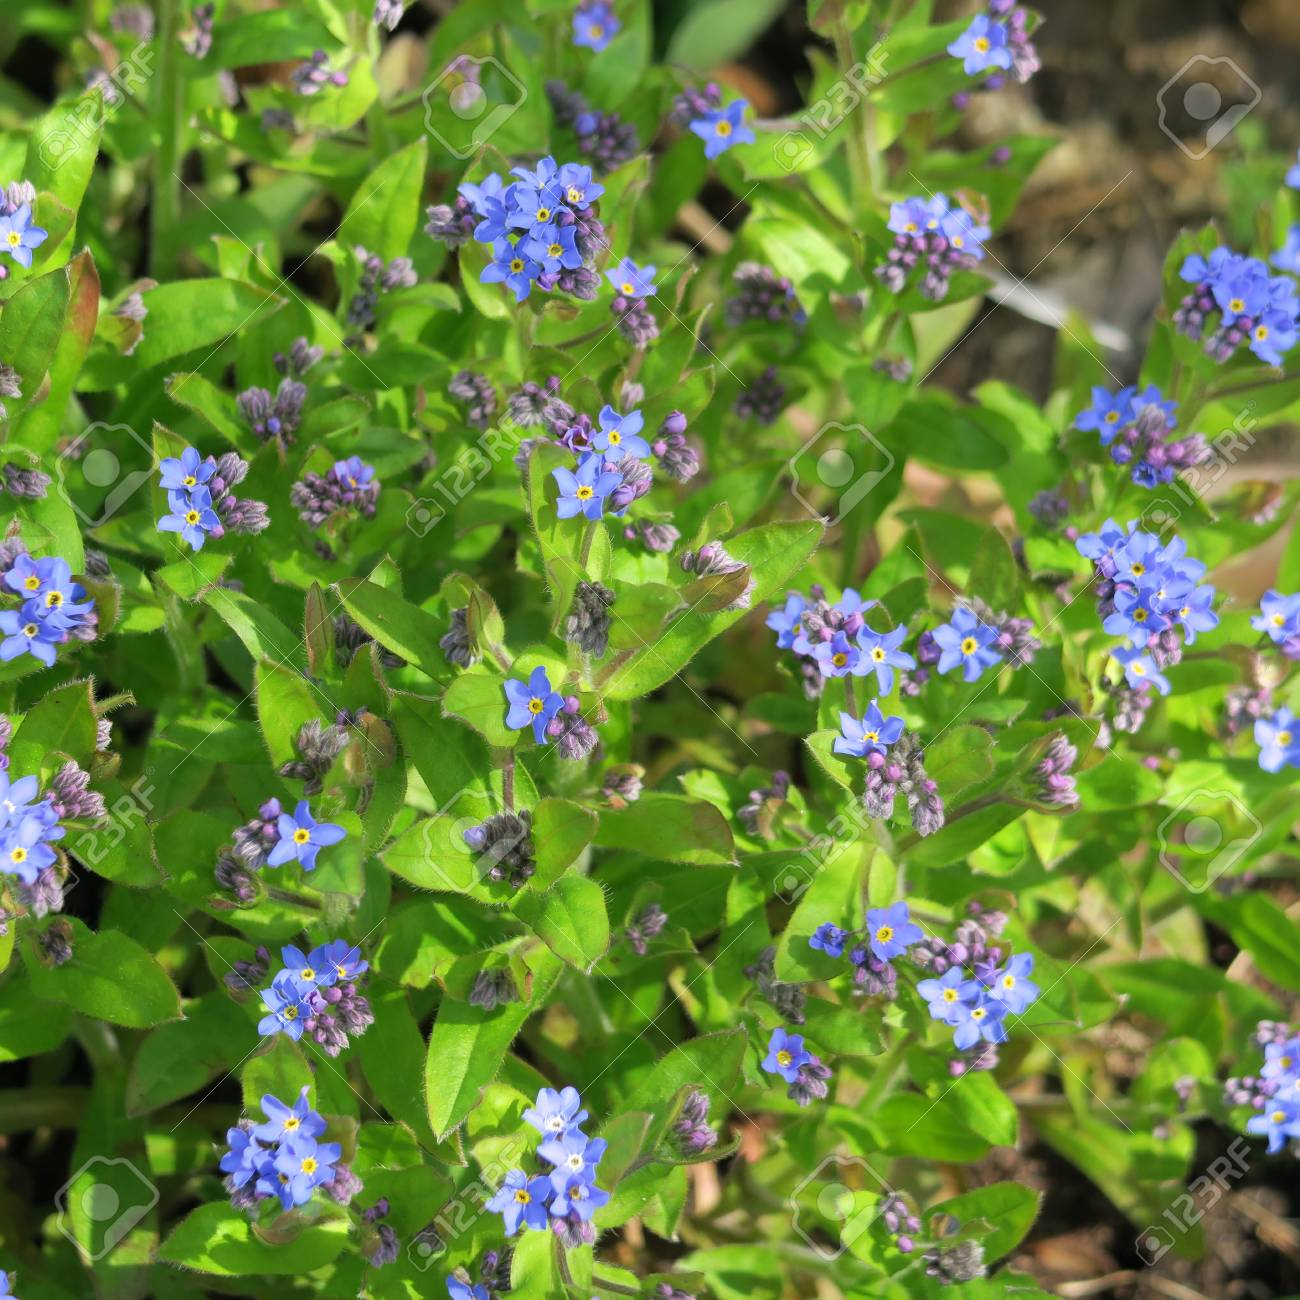 Forget Me Myosotis Starts To Bloom In The May A Small Blue Stock